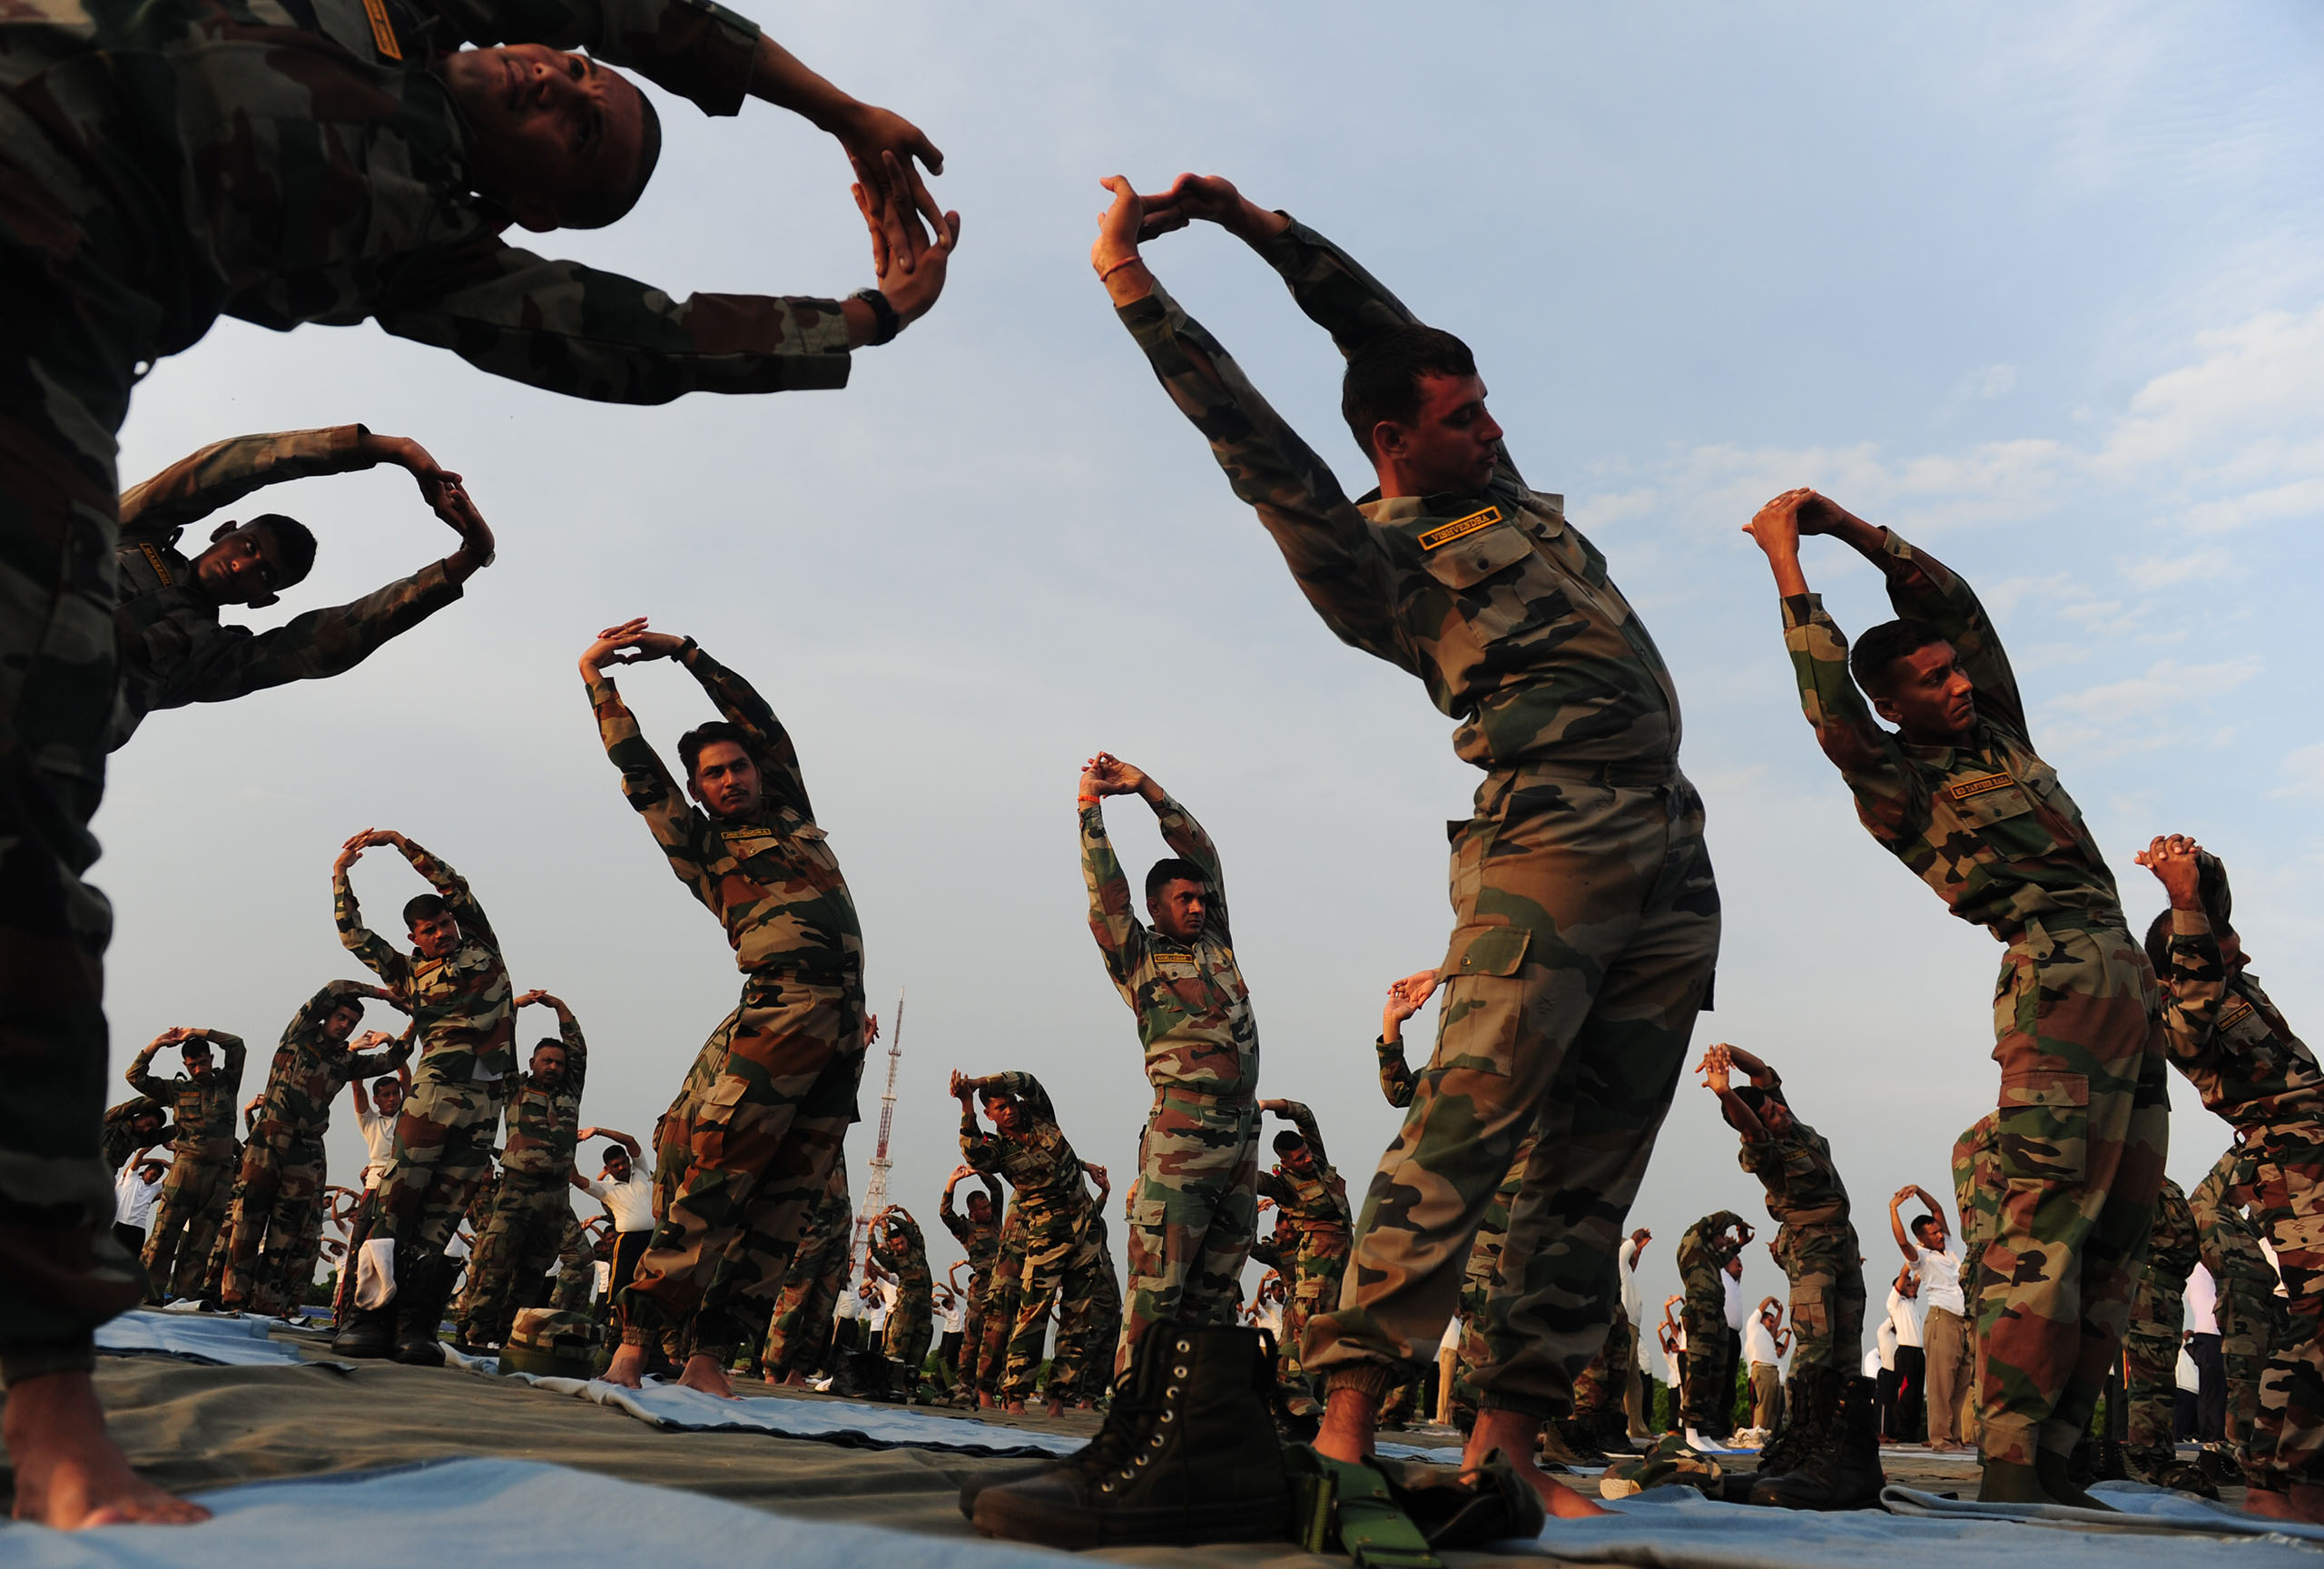 Indian Army soldiers participate in a yoga demonstration on International Yoga Day in Chennai, India, on June 21, 2016.